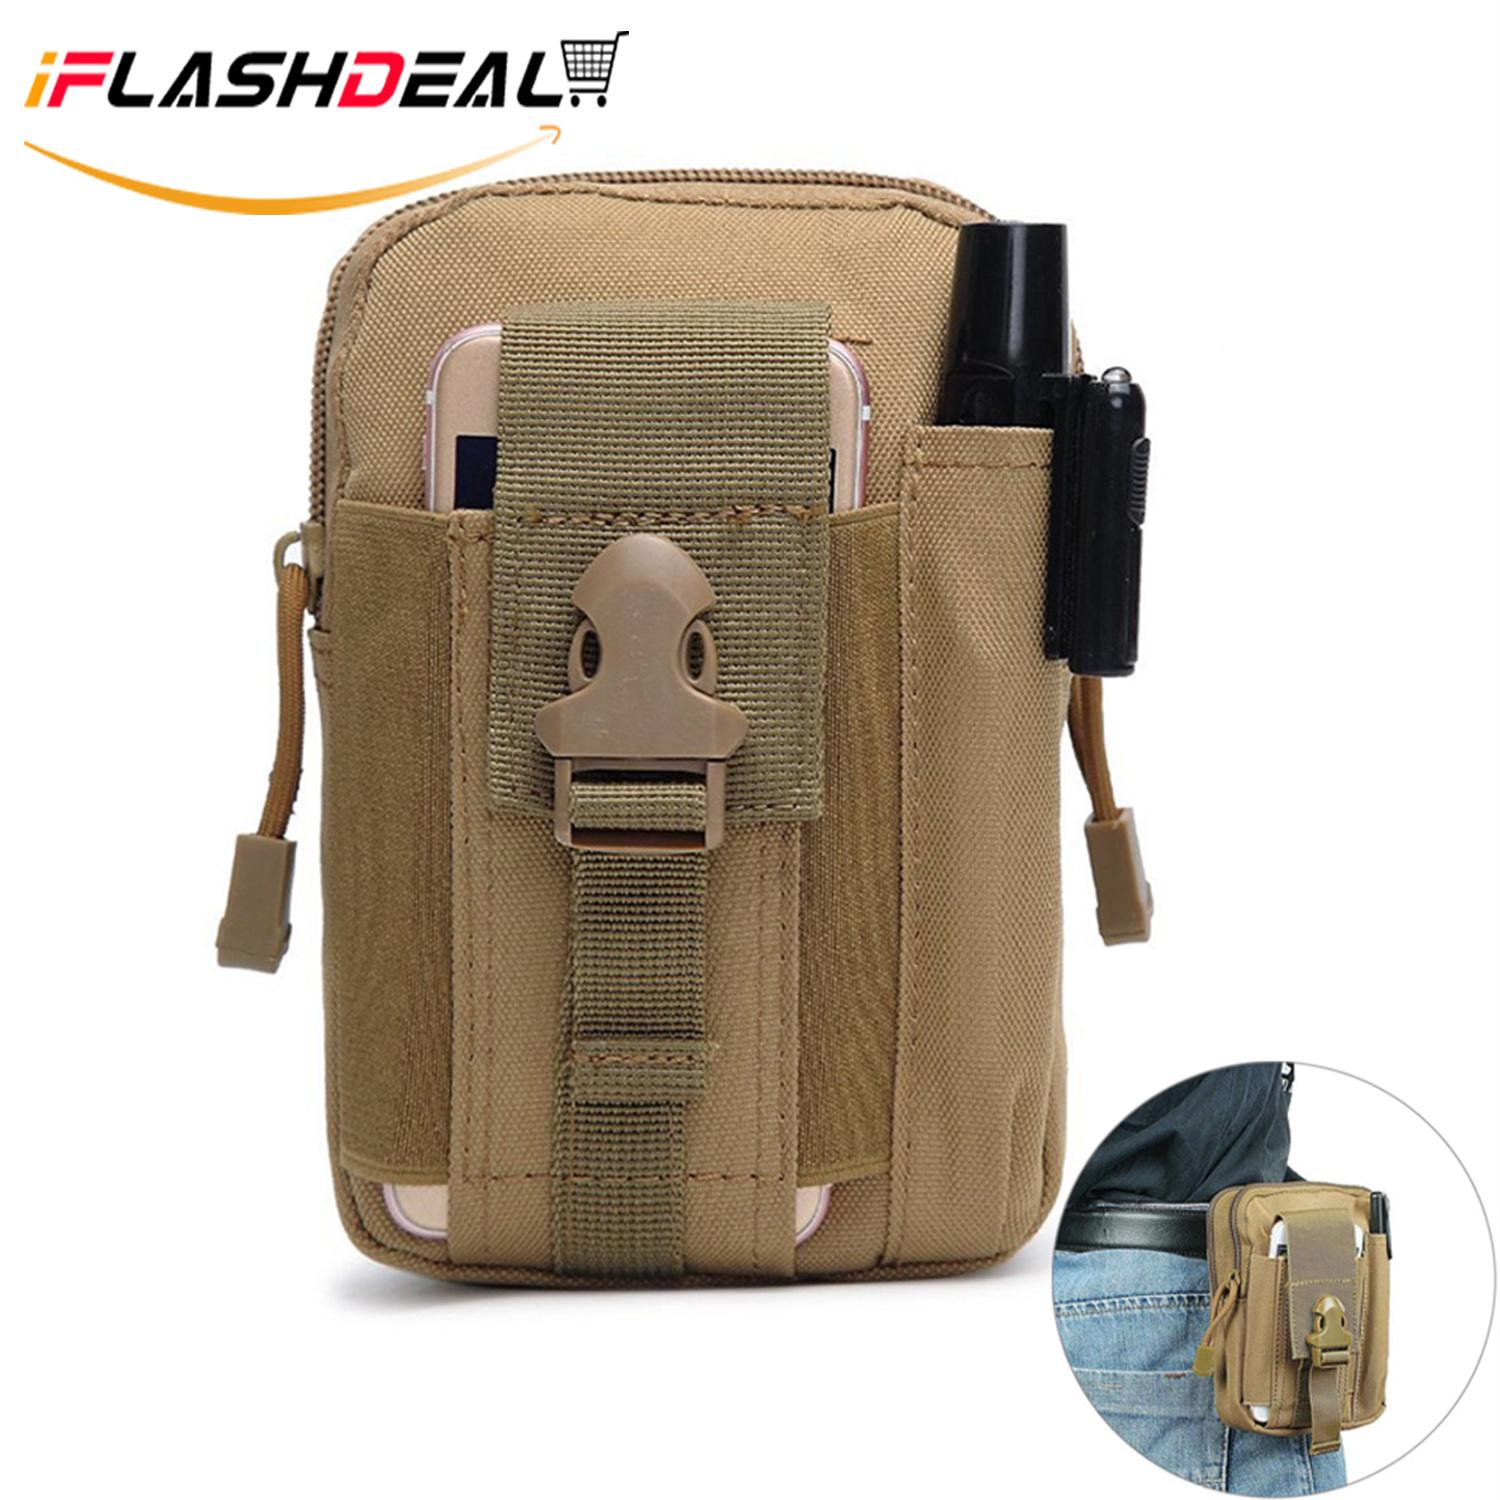 aaa04f09881f iFlashDeal Tactical Molle Pouch Compact EDC Utility Gadget Belt Waist Bag  Pack Pocket Organizer with Cell